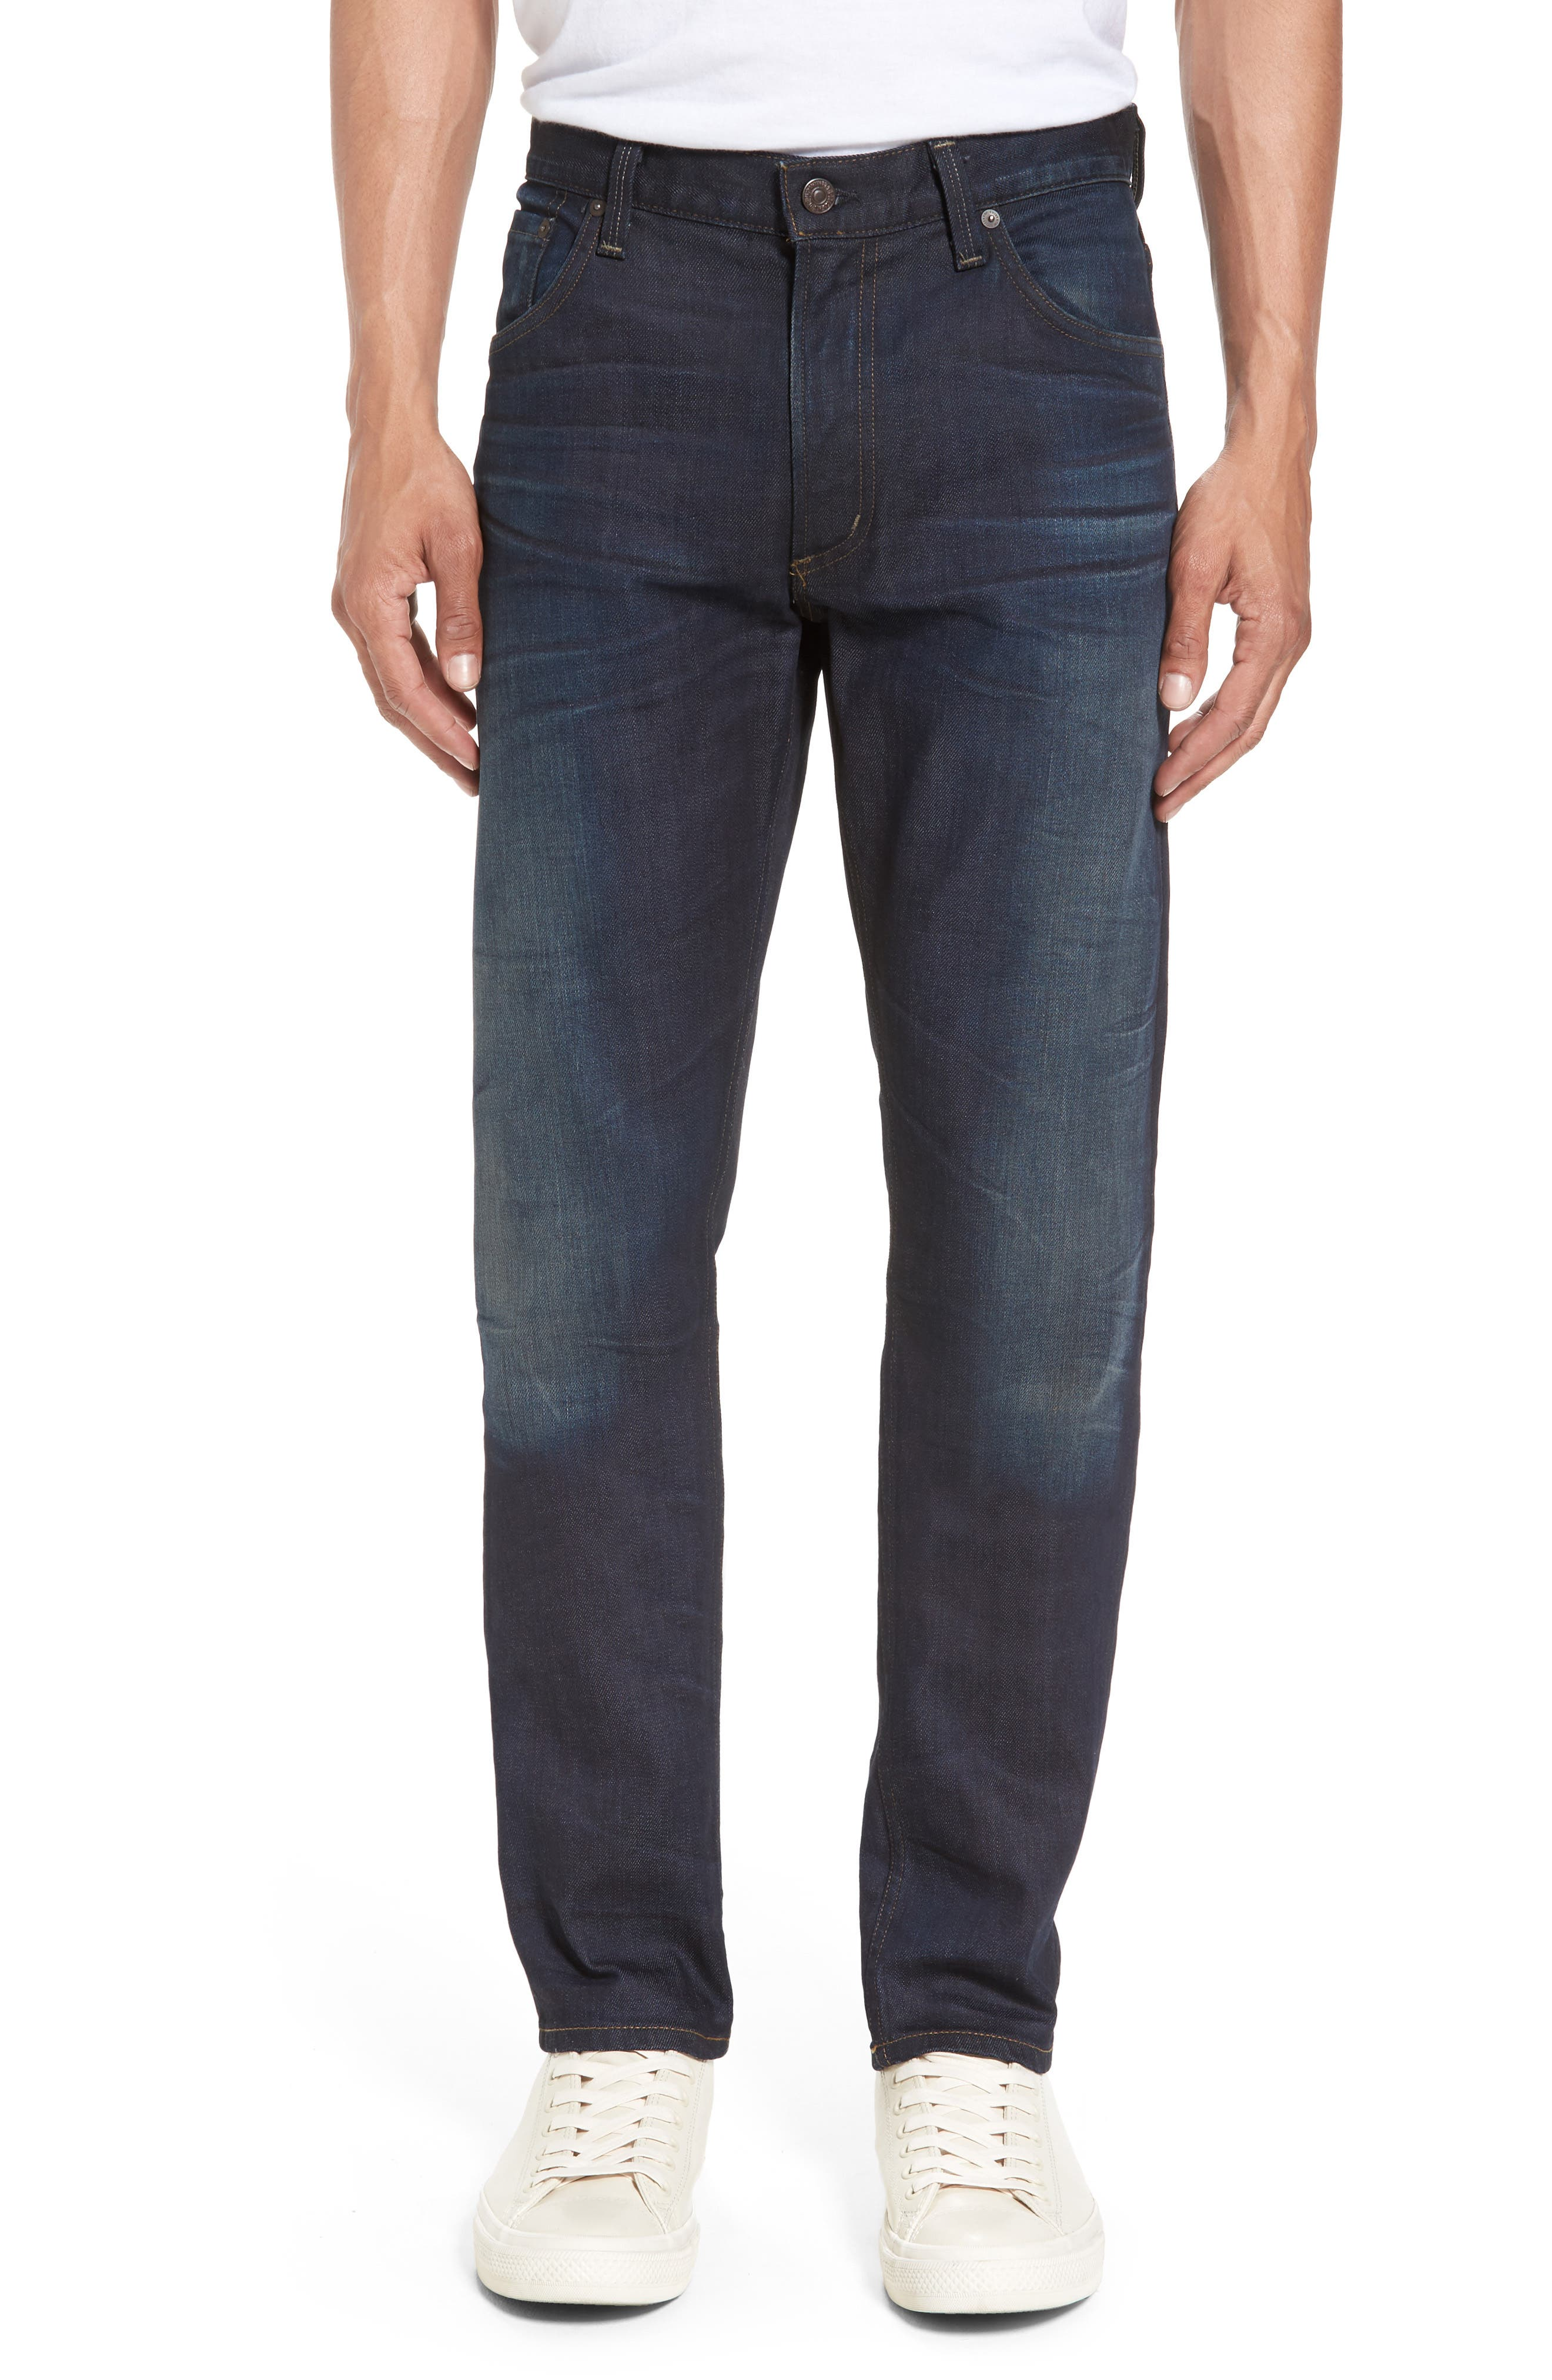 Bowery Slim Fit Jeans,                         Main,                         color, Huron